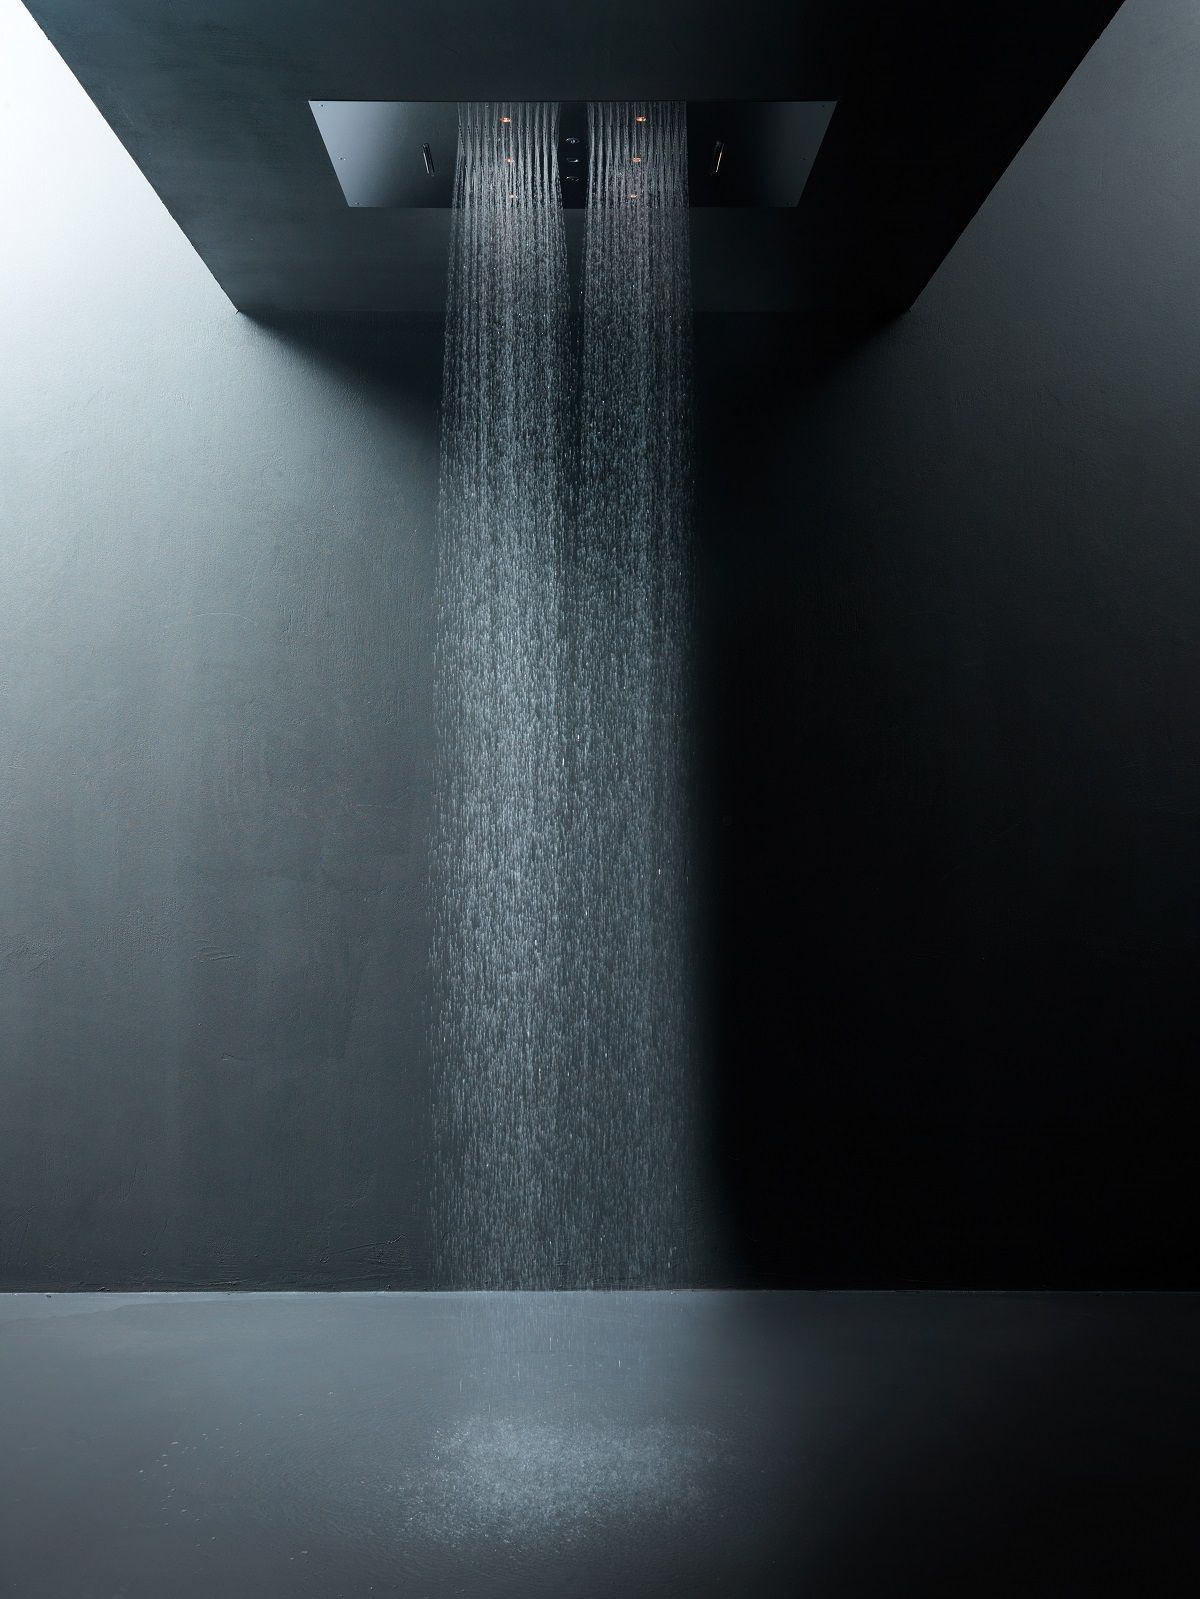 Infinity Mcrc 850 540 Built In Shower Head With Images Best